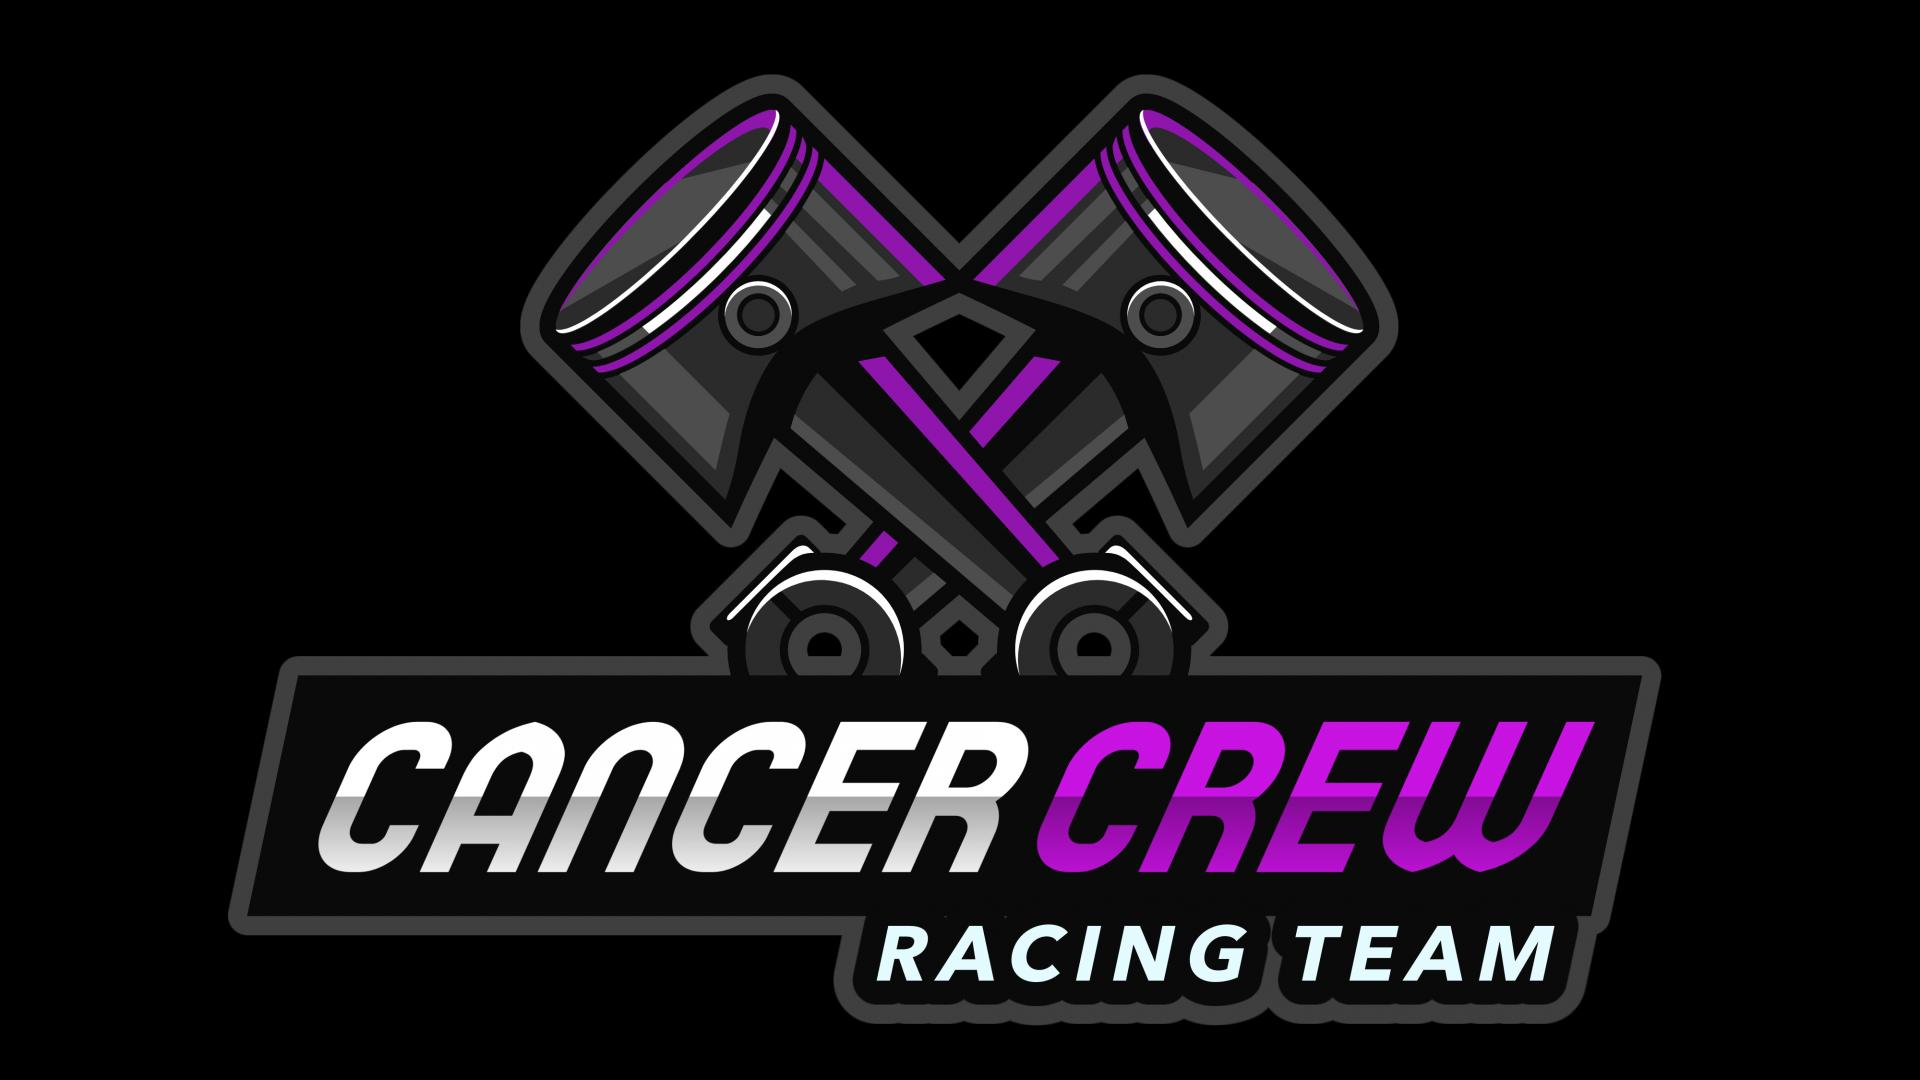 Cancer Crew Racing